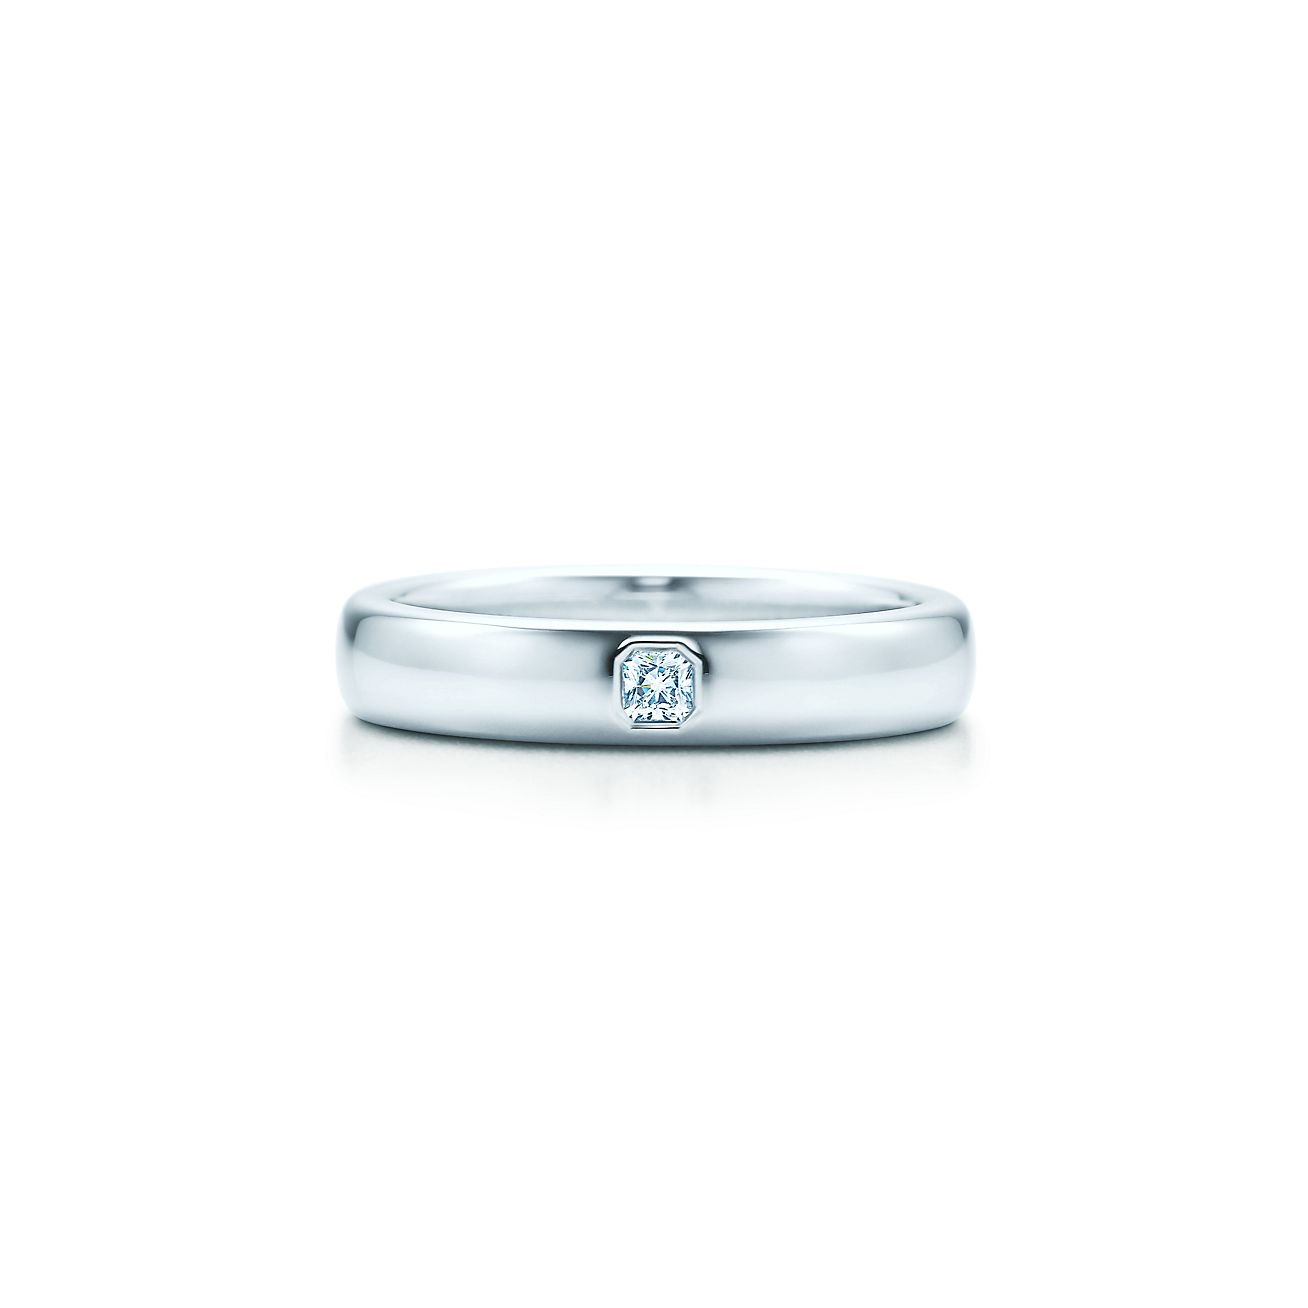 Tiffany Classic wedding band ring in platinum with a diamond 4